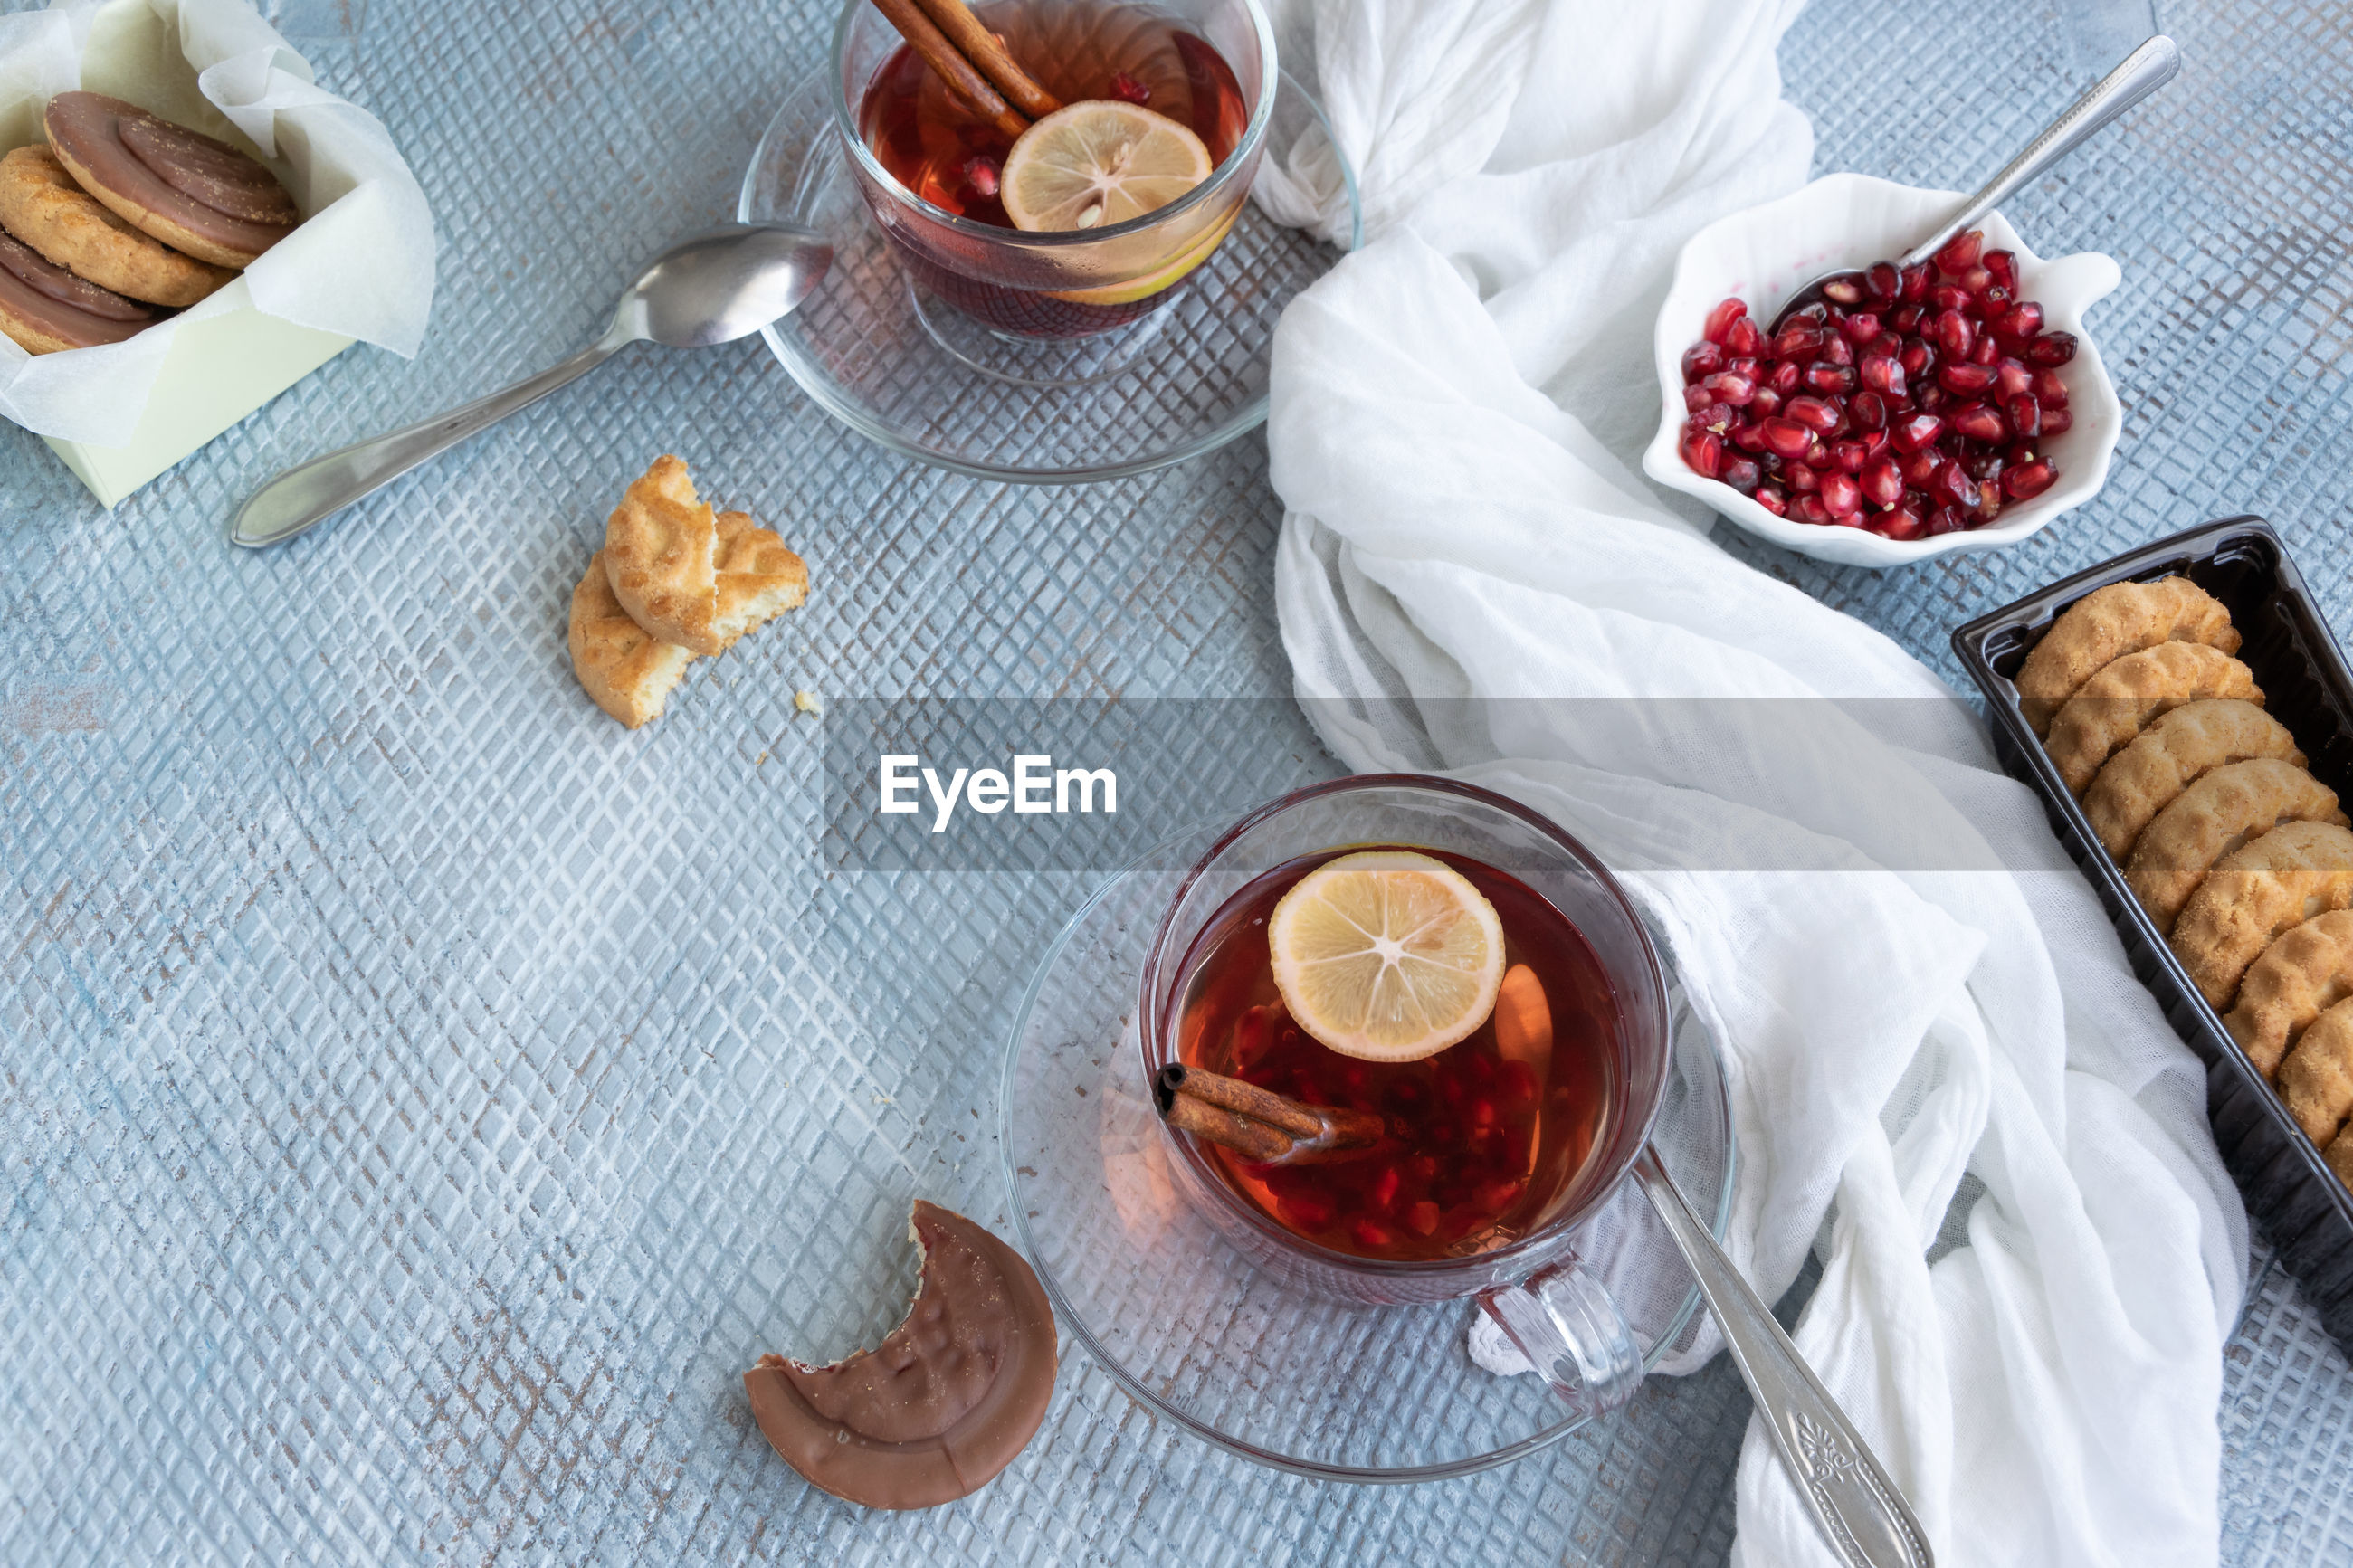 HIGH ANGLE VIEW OF BREAKFAST IN GLASS ON TABLE